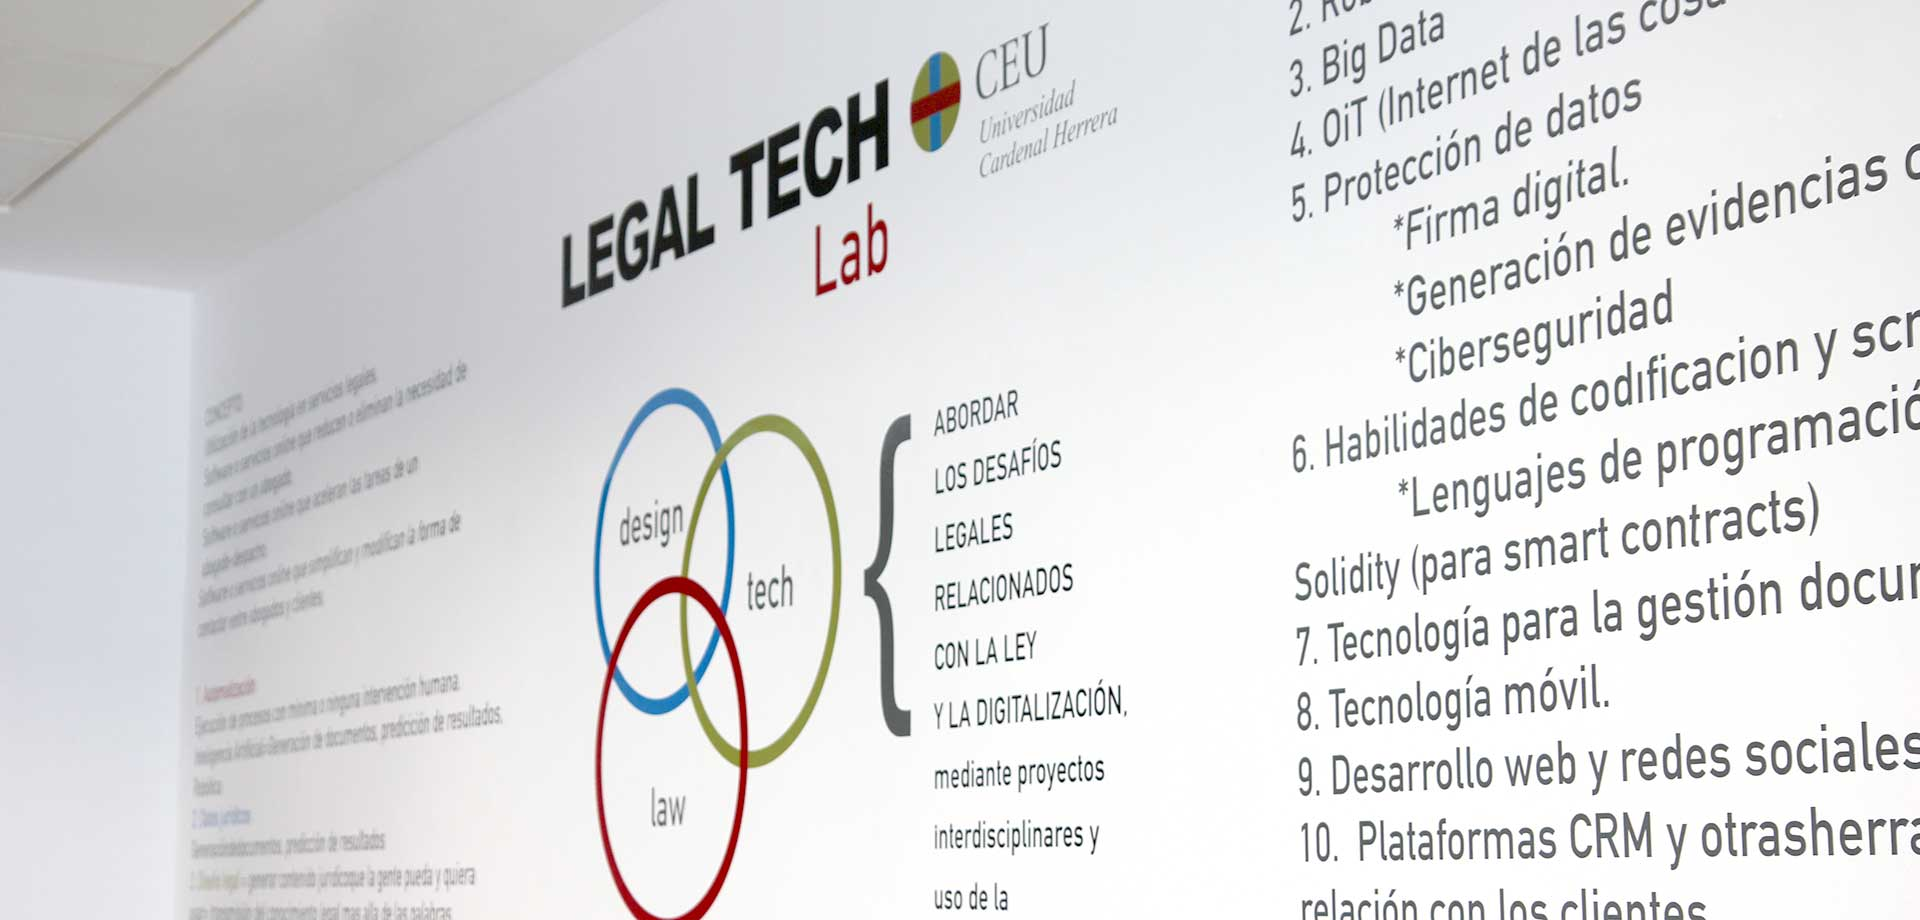 Legal Tech, new professional competencies